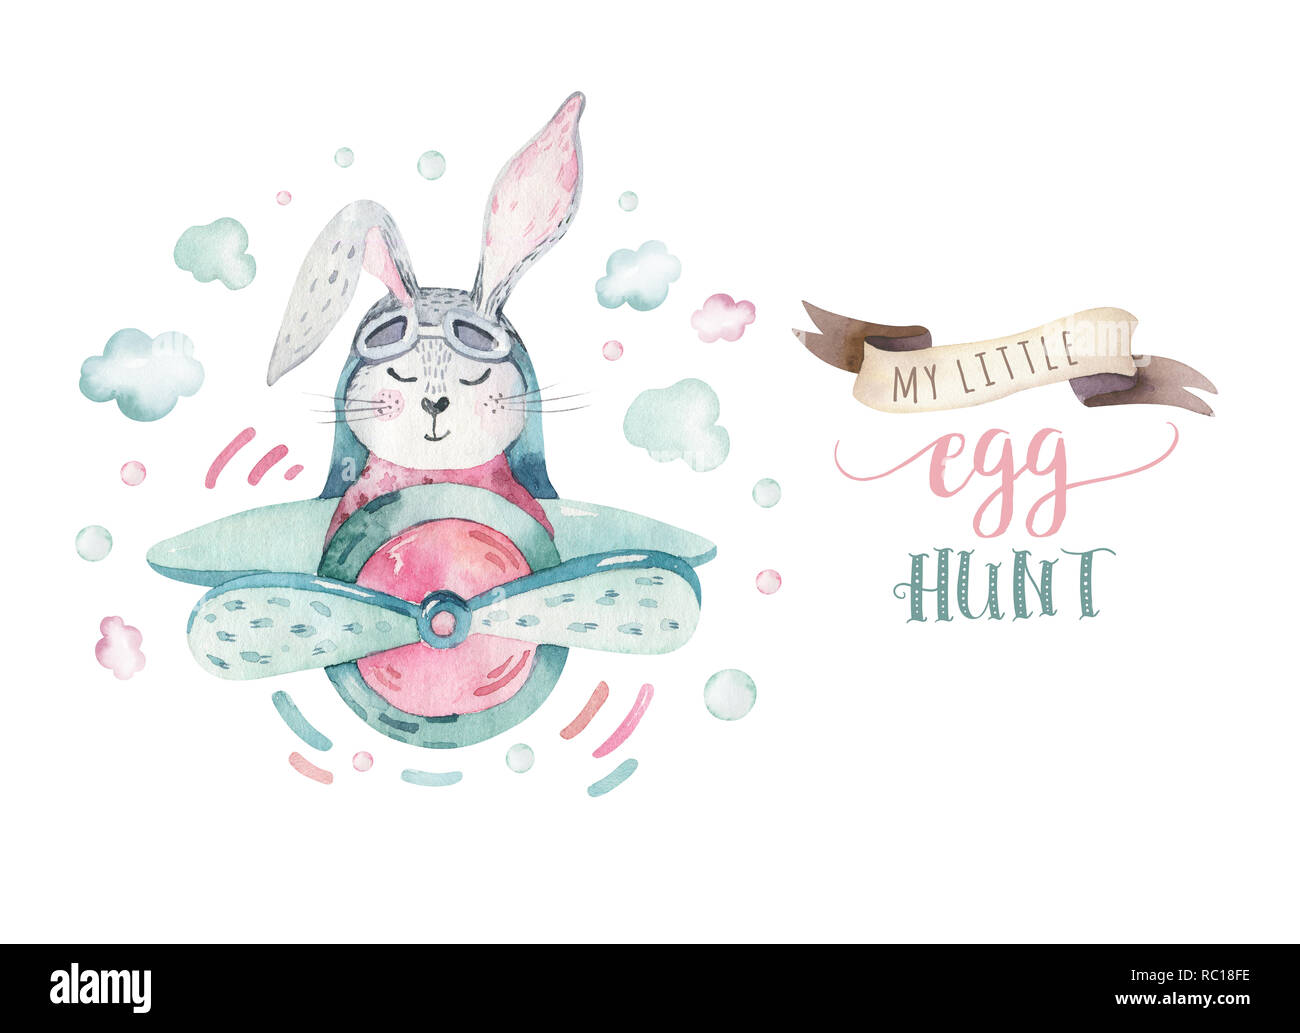 Hand Drawing Fly Cute Easter Pilot Bunny Watercolor Cartoon Bunnies With Airplane In The Sky Turquoise Watercolour Animal Rabbit Flying Art Flight Illustration Stock Photo Alamy